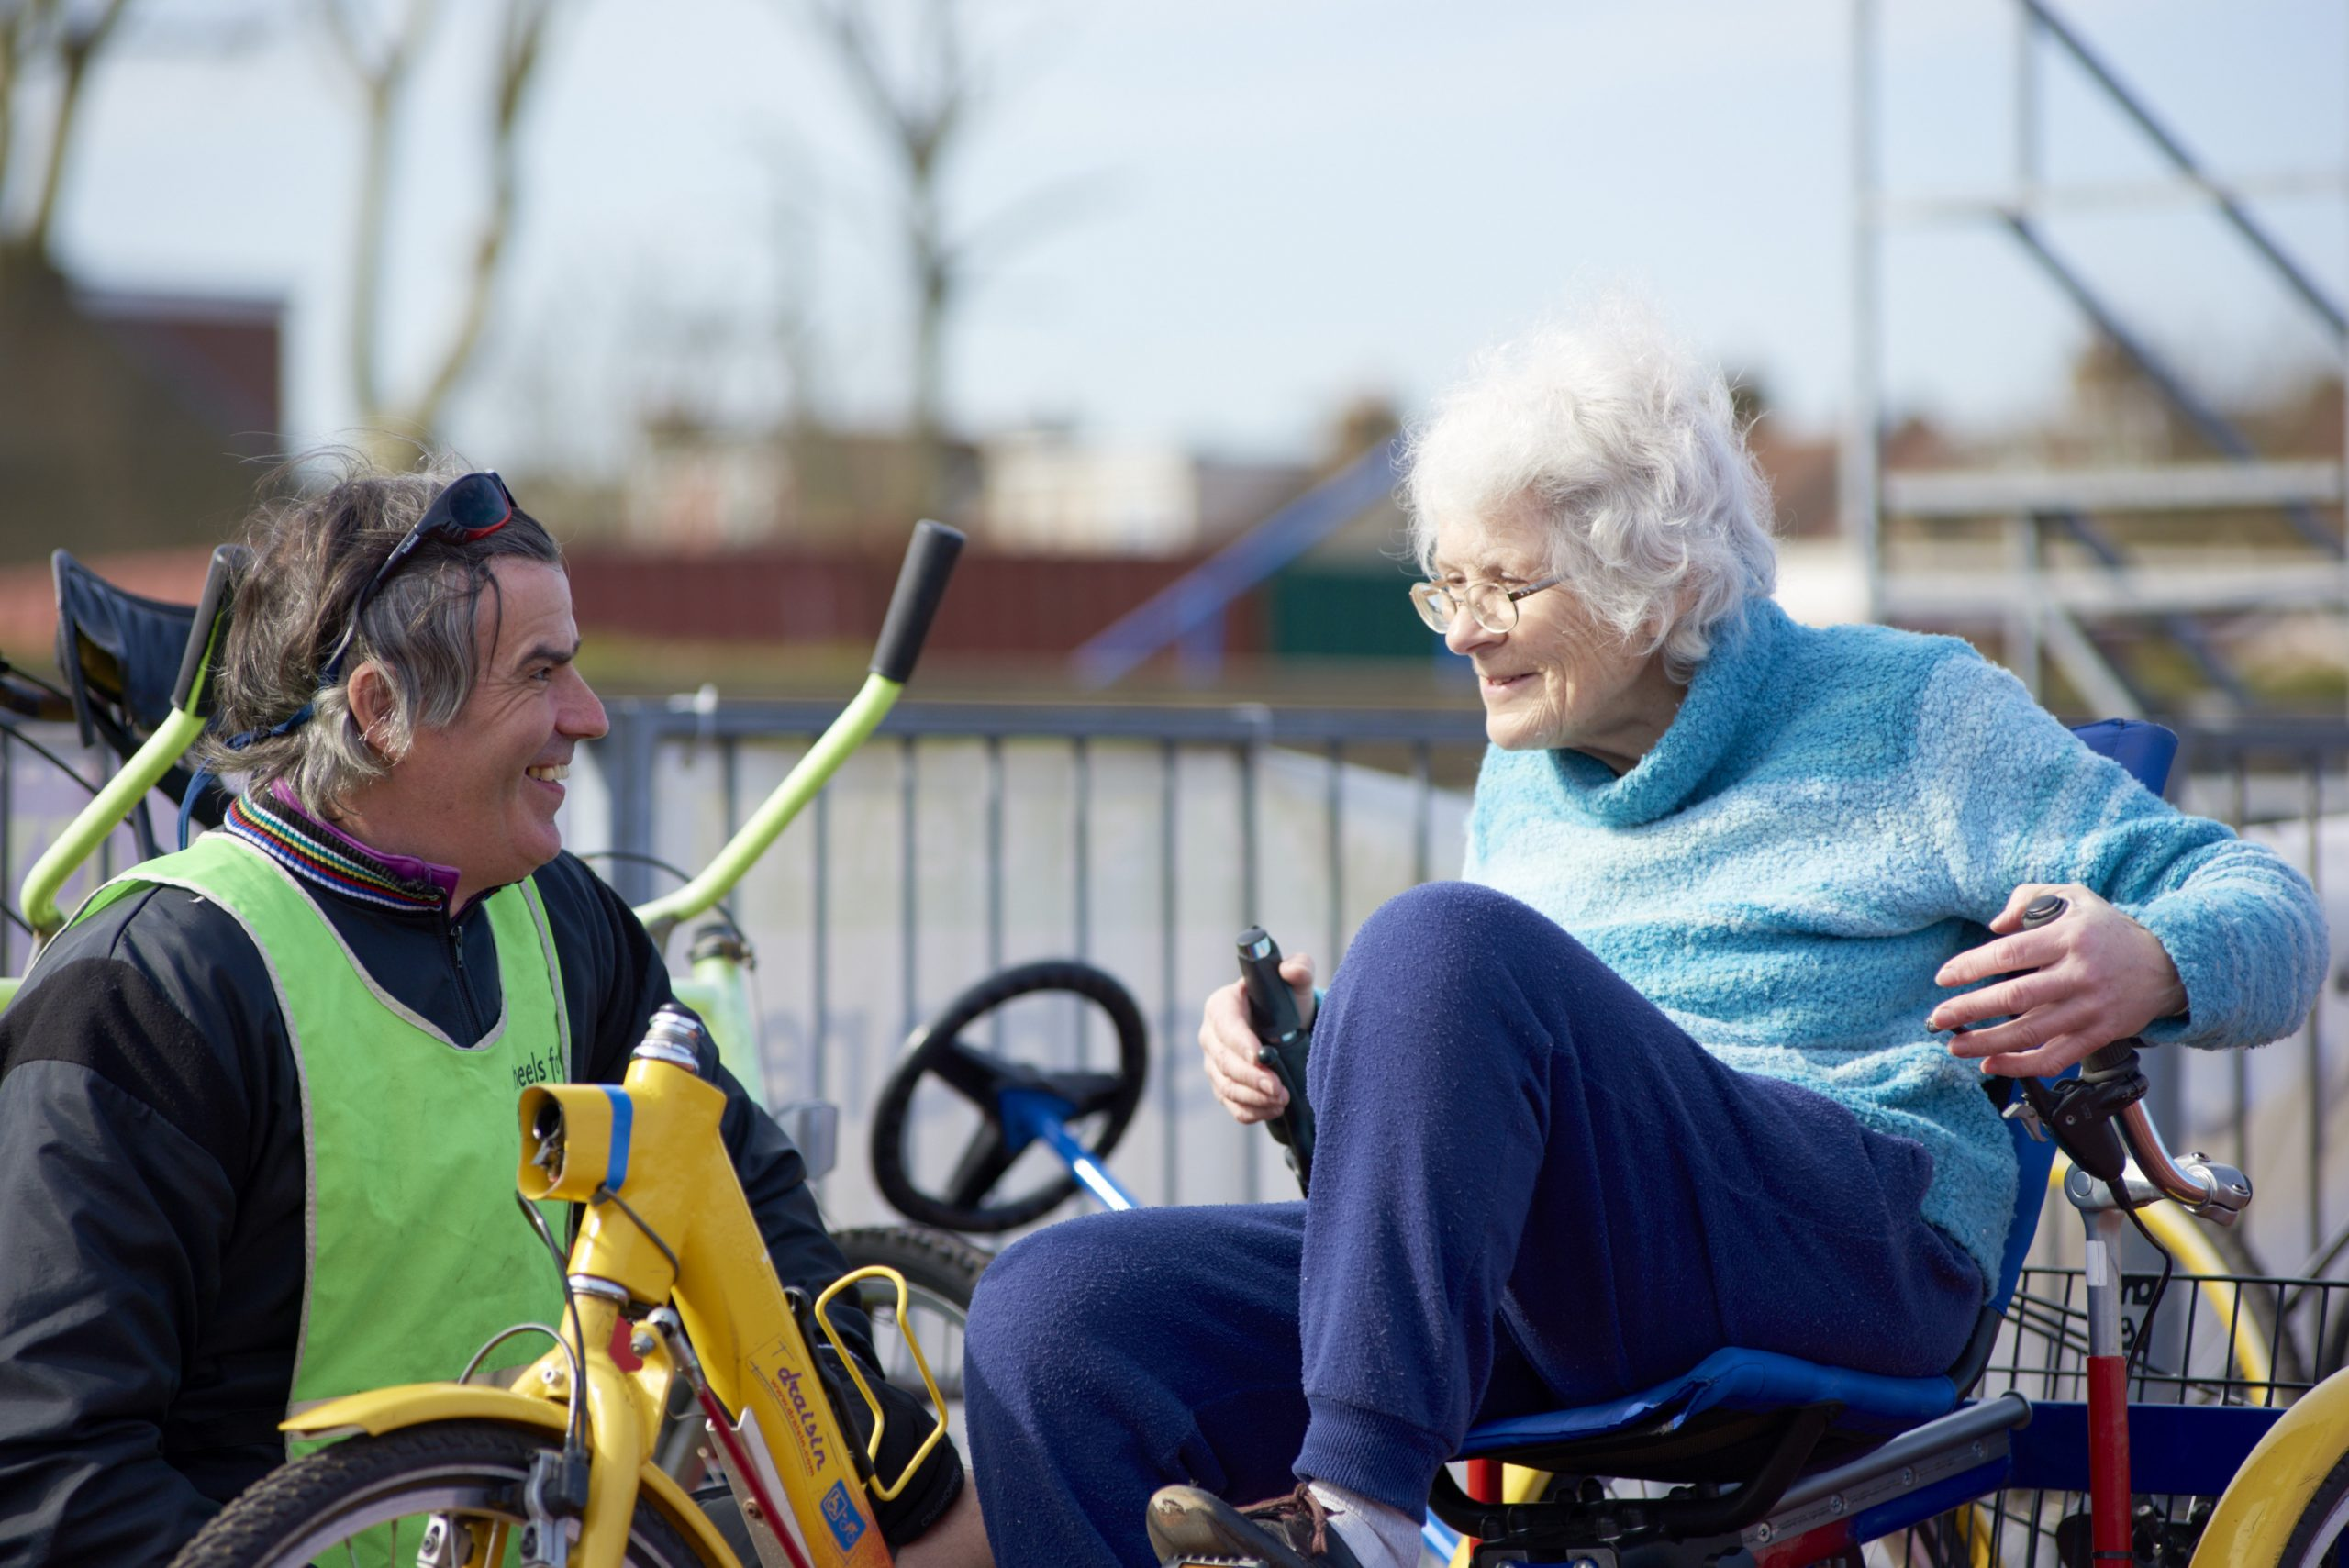 Stuck in motion – How Wheels for Wellbeing learned lessons in lockdown